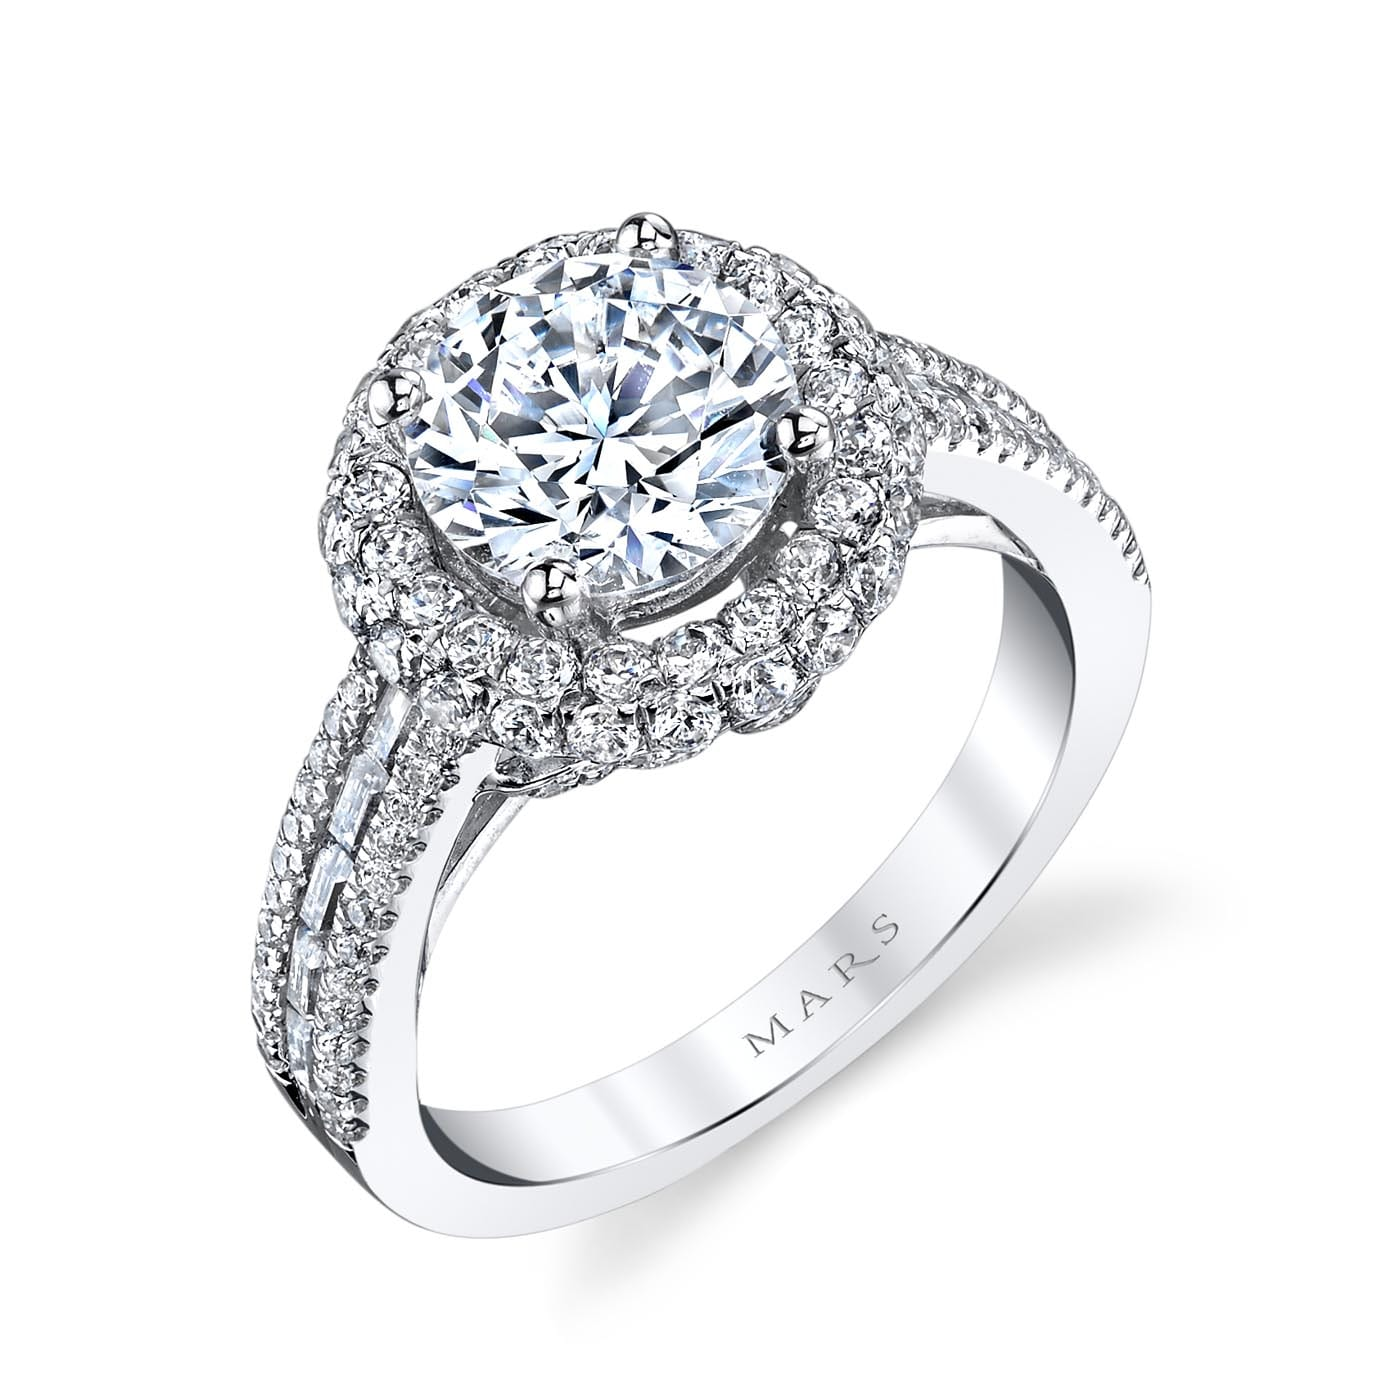 Halo Engagement RingStyle #: MARS 25637